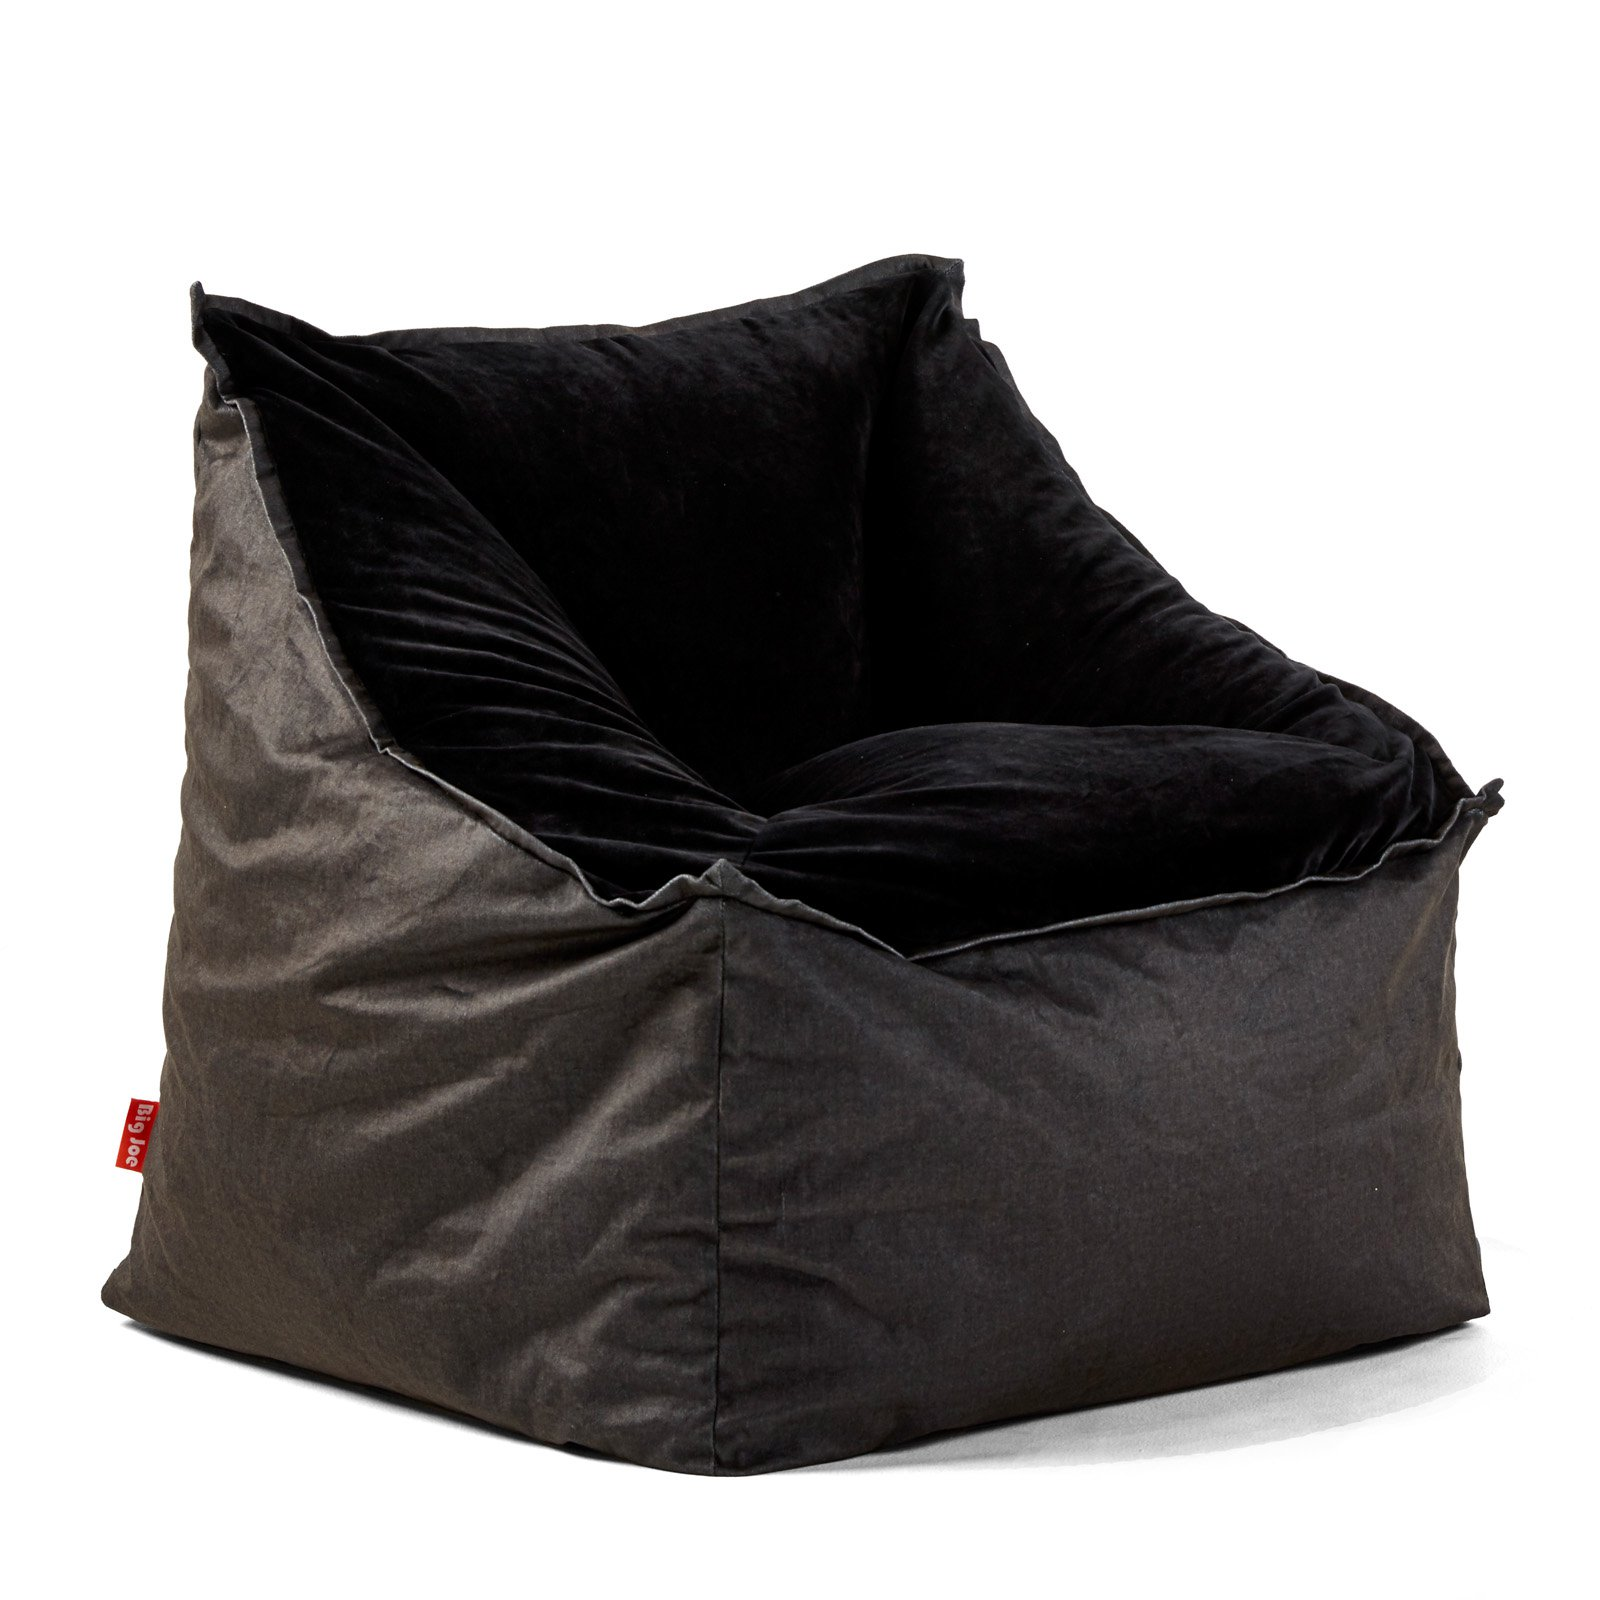 Amazing Big Joe Lux Slalom Bean Bag Chair Walmart Com Ibusinesslaw Wood Chair Design Ideas Ibusinesslaworg